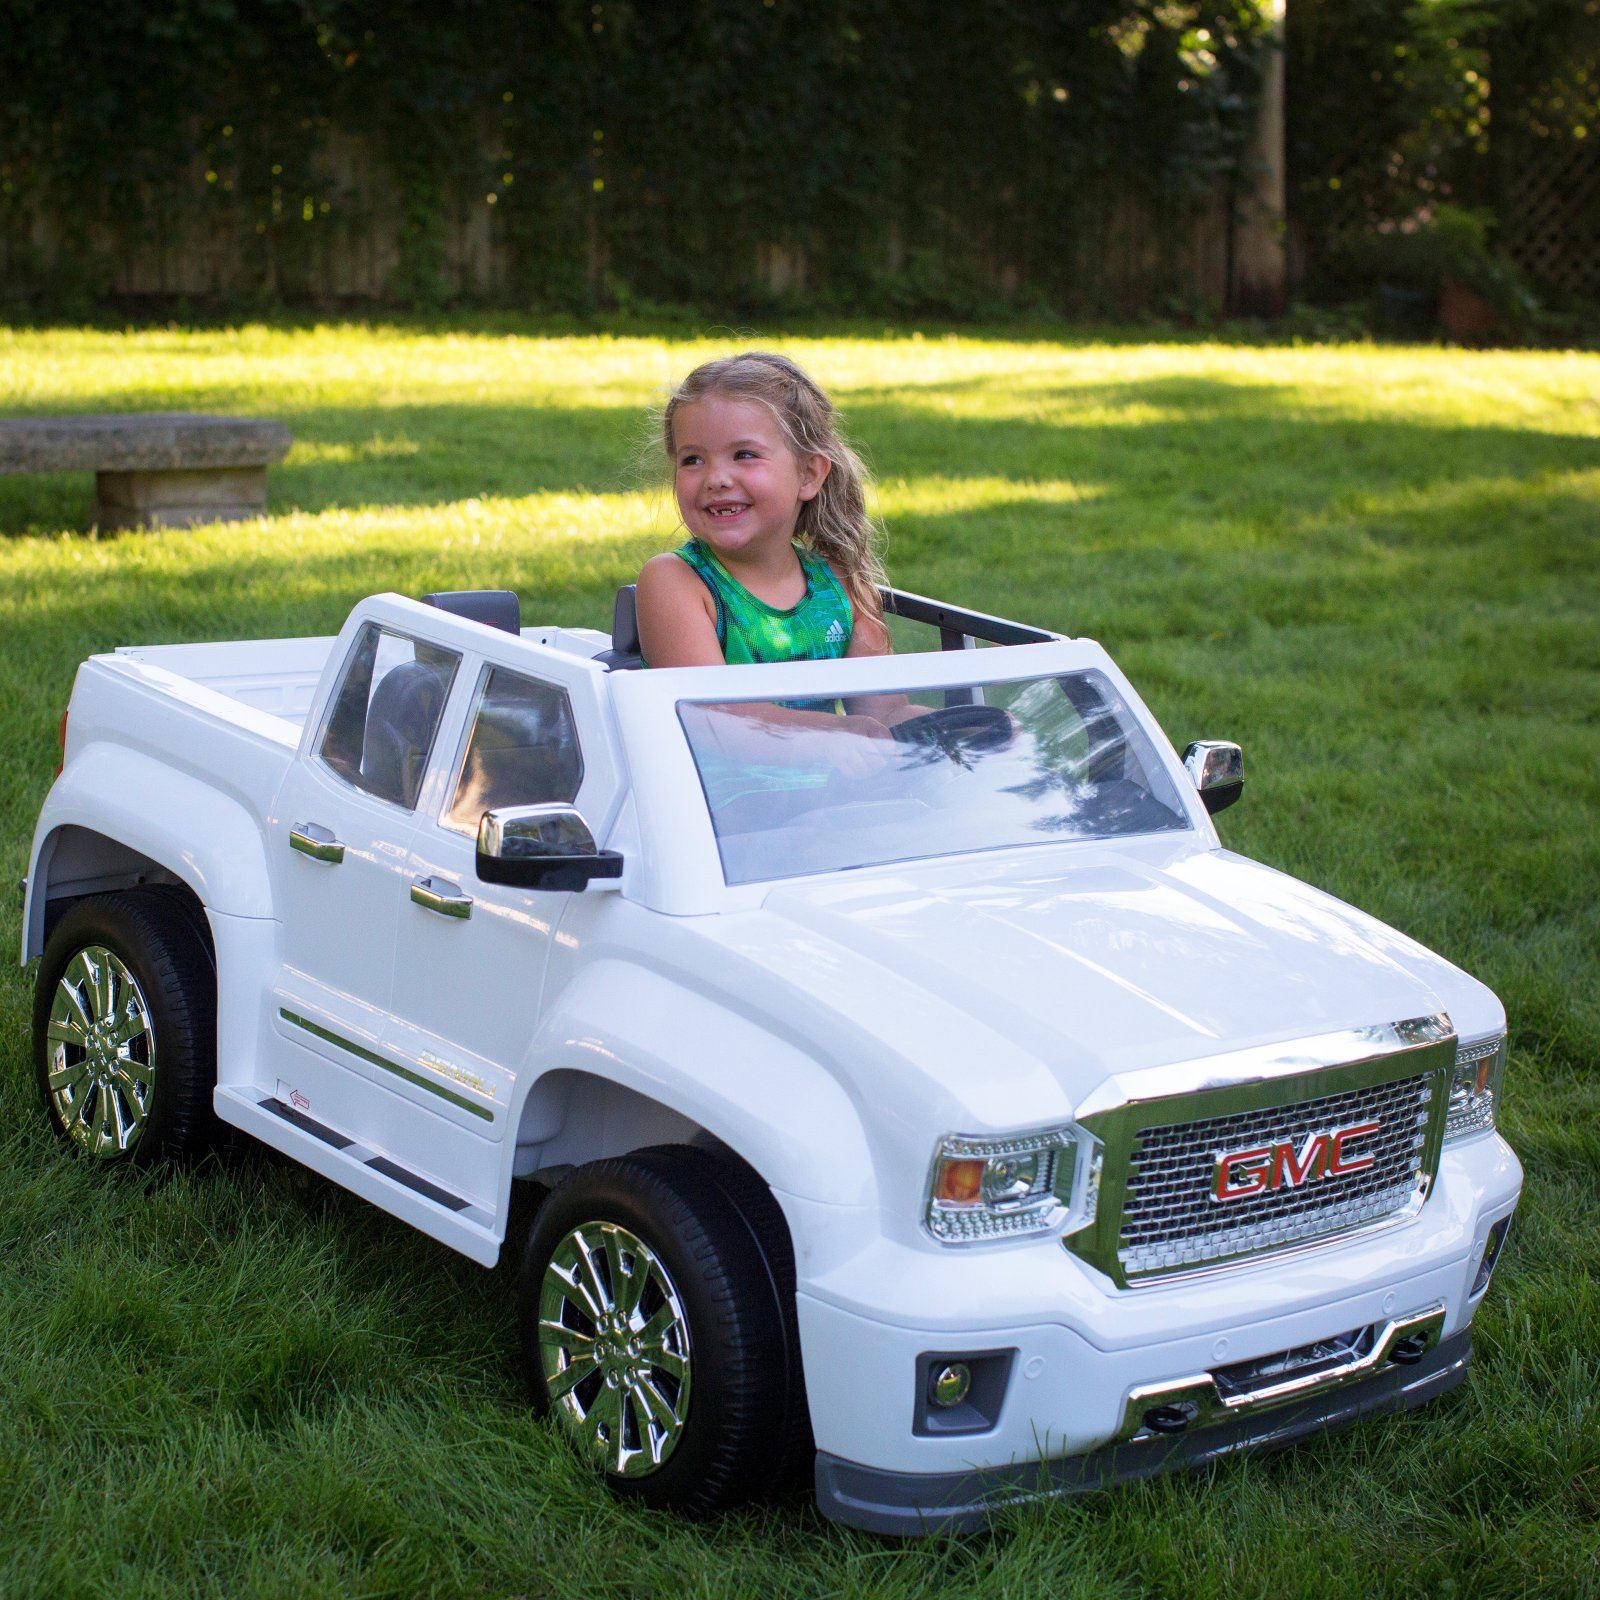 Rollplay 12 Volt GMC Sierra Denali Battery Powered Ride-On Vehicle - White